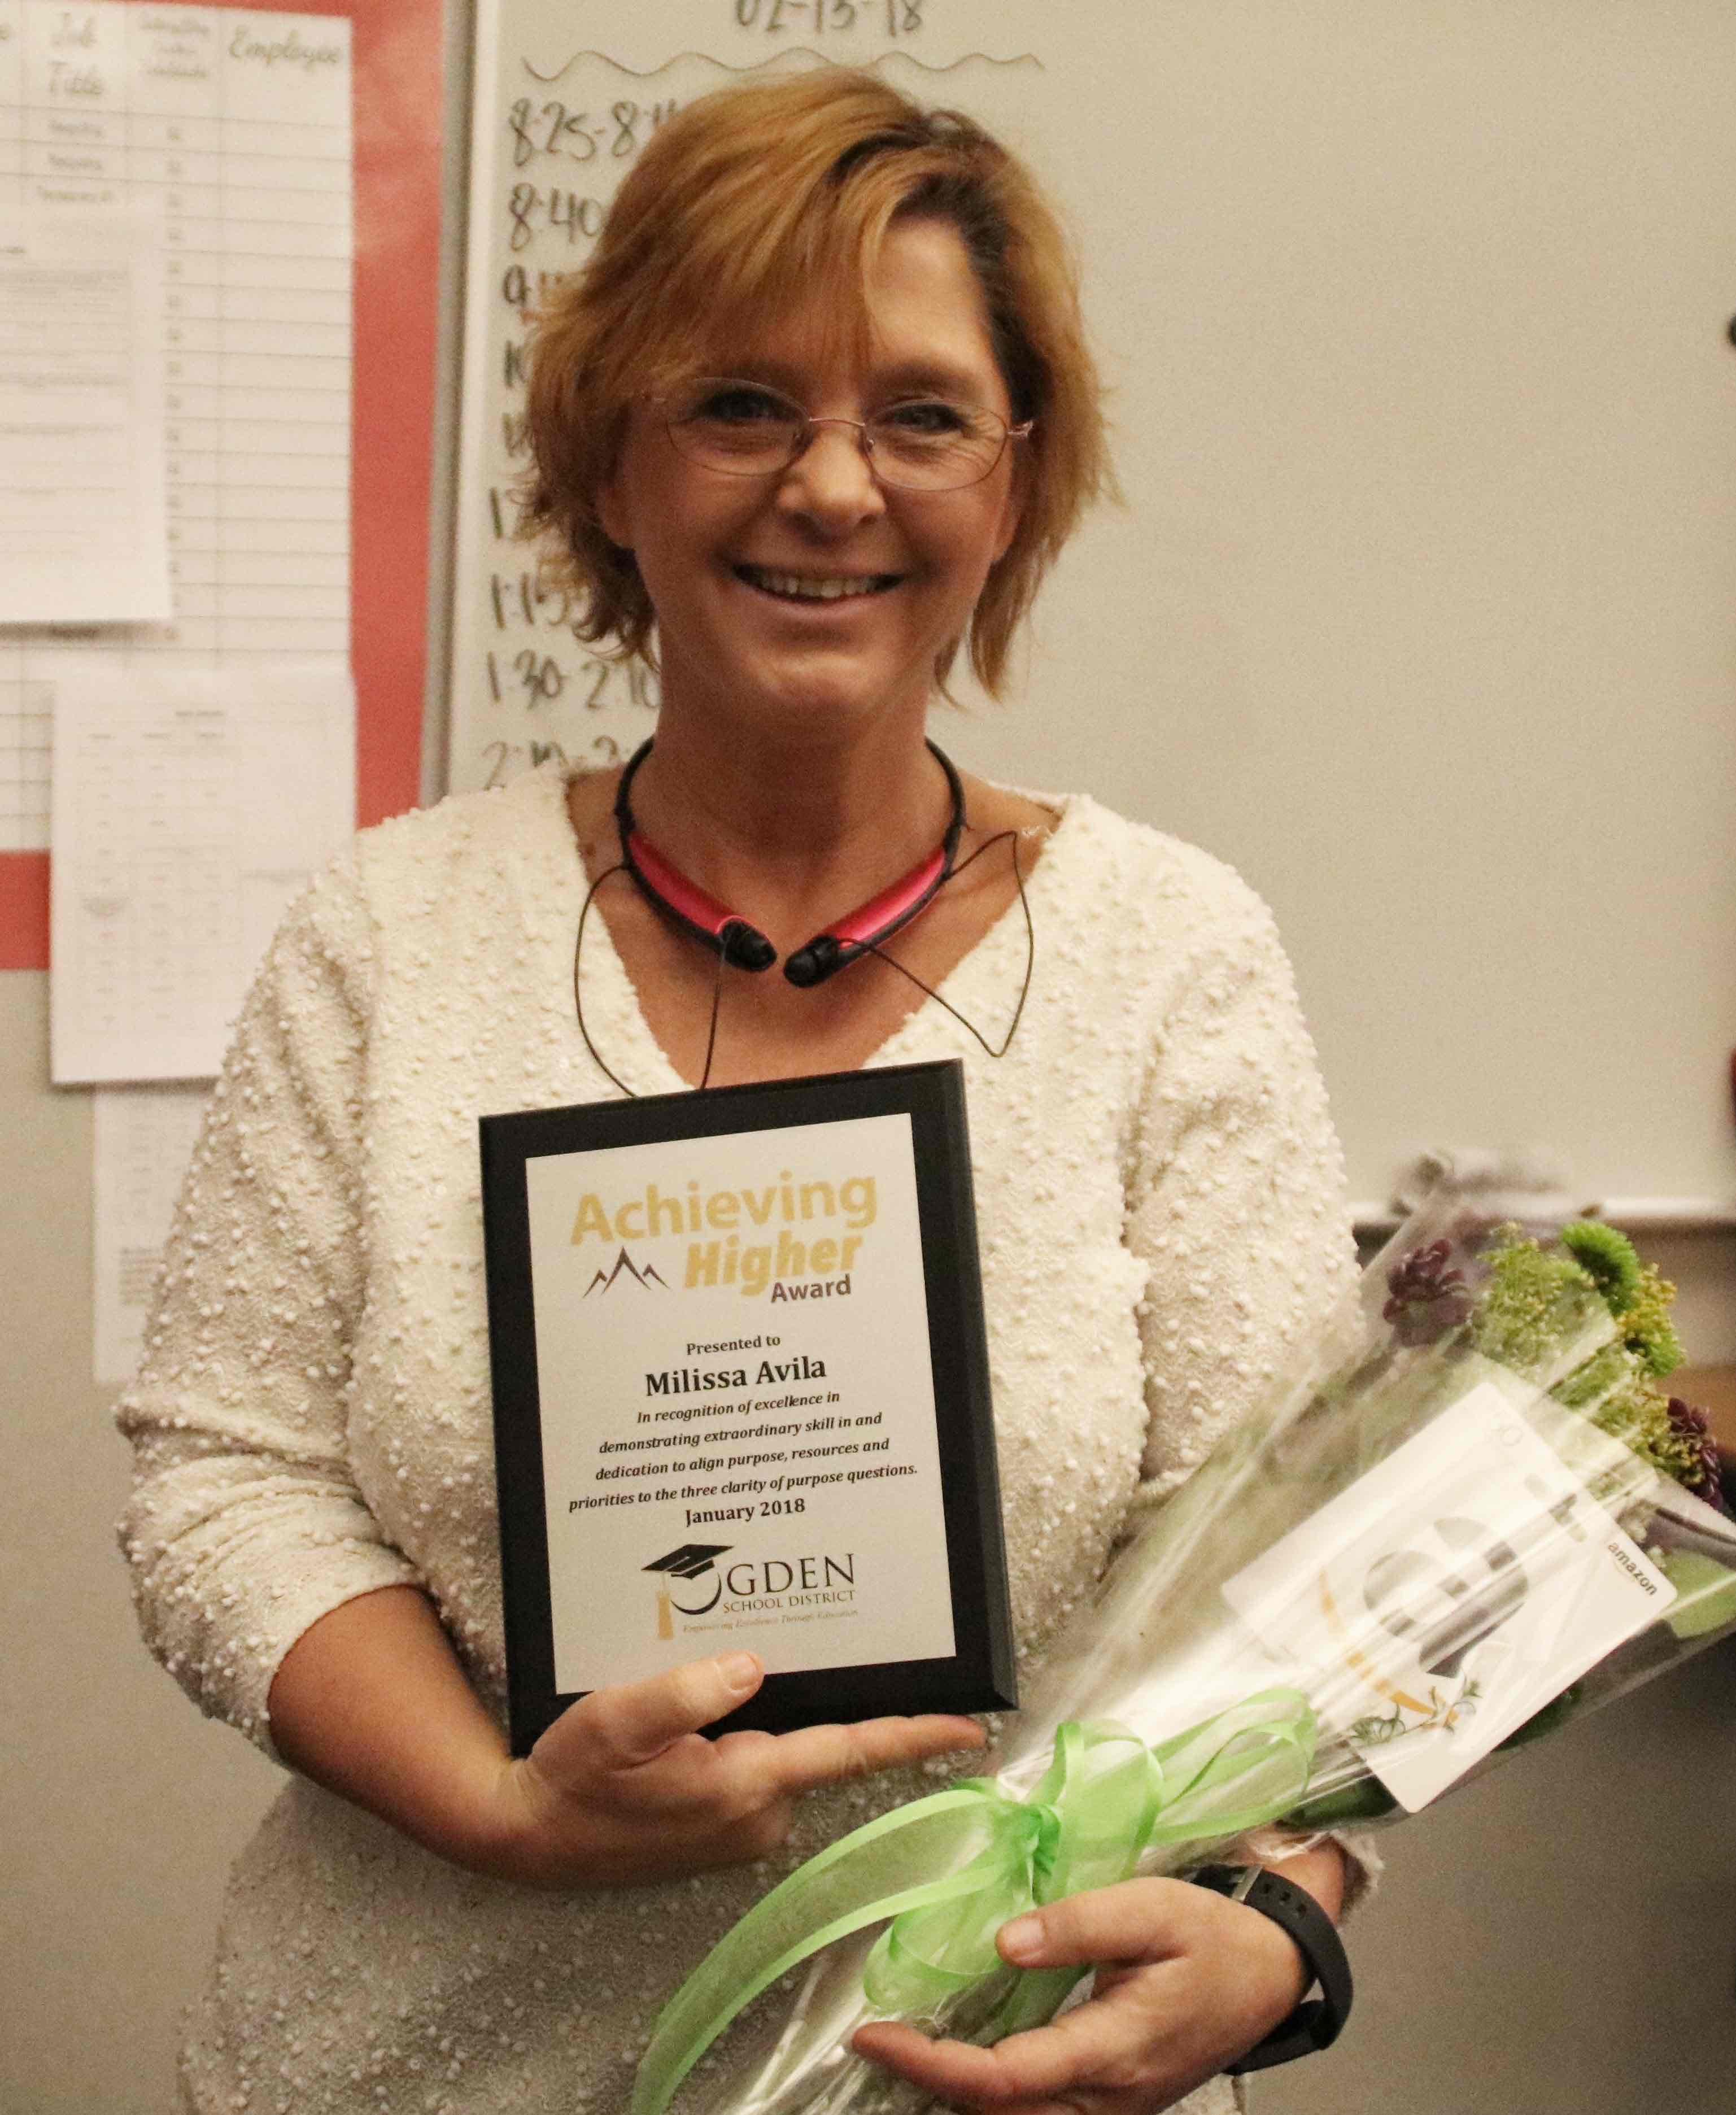 Congratulations to Milissa Avila, Lincoln 5th grade teacher, for being honored with Ogden School District's January Achieving Higher Award!